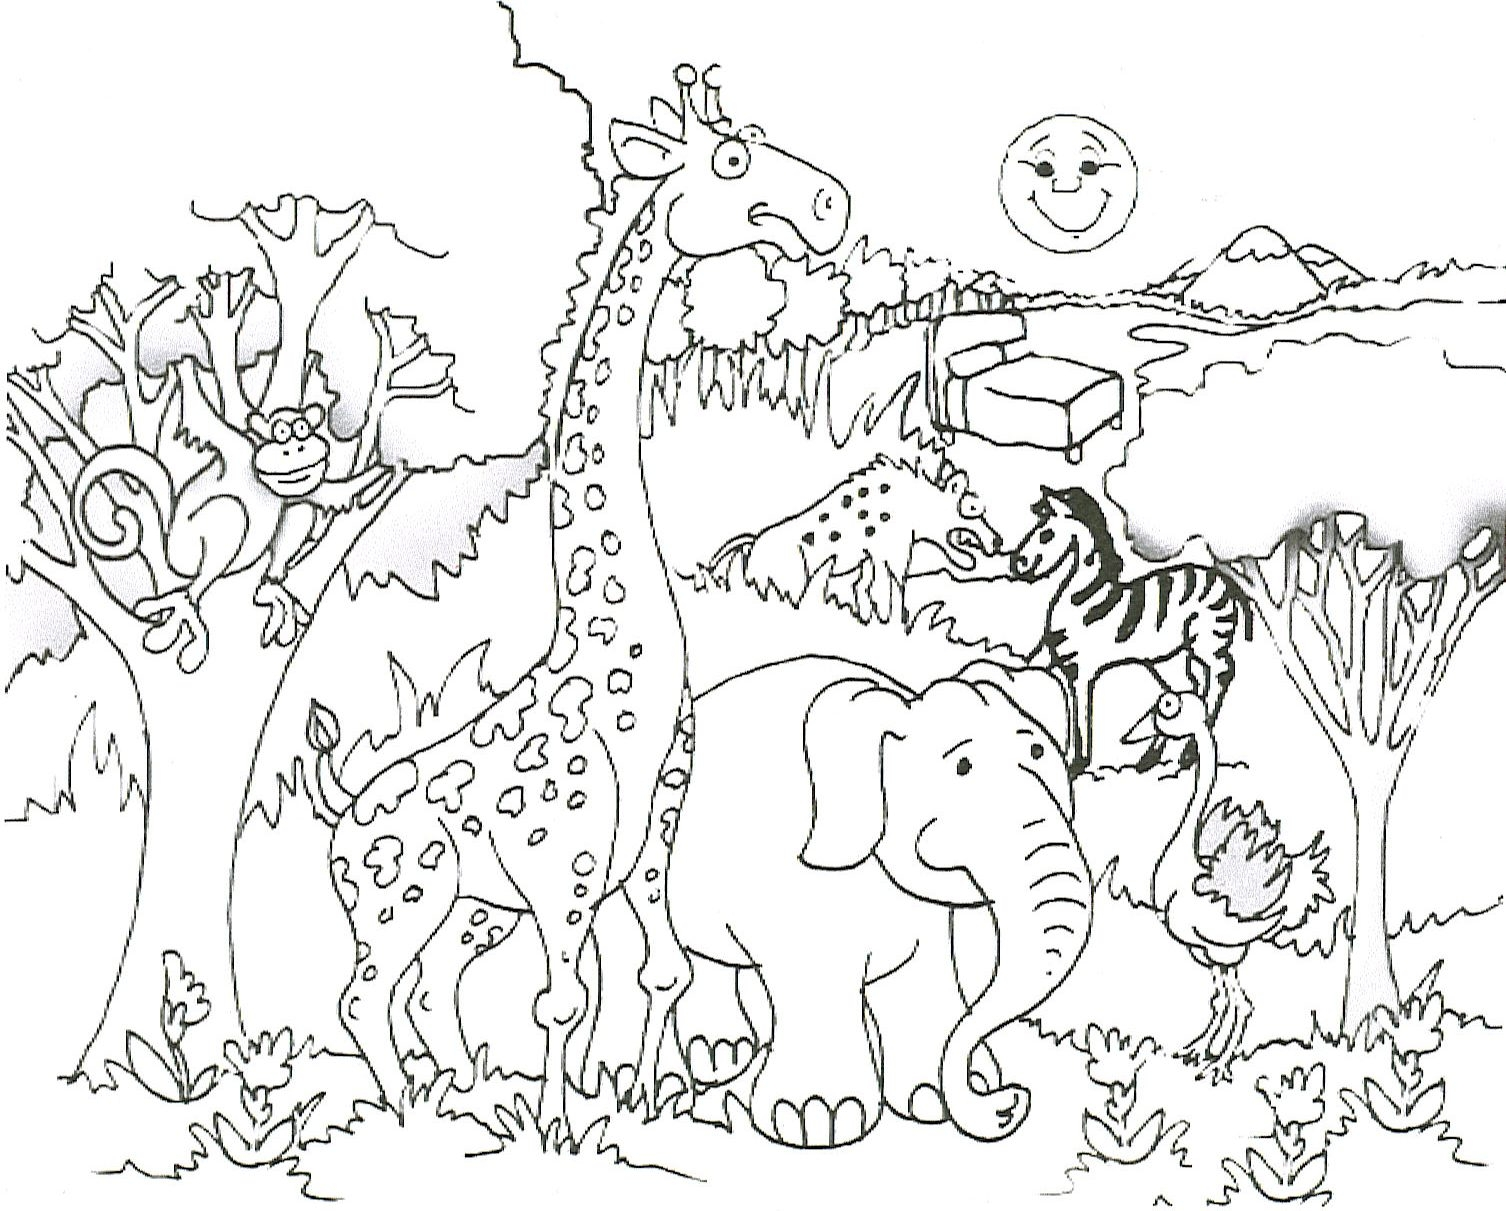 Wildlife coloring #1, Download drawings